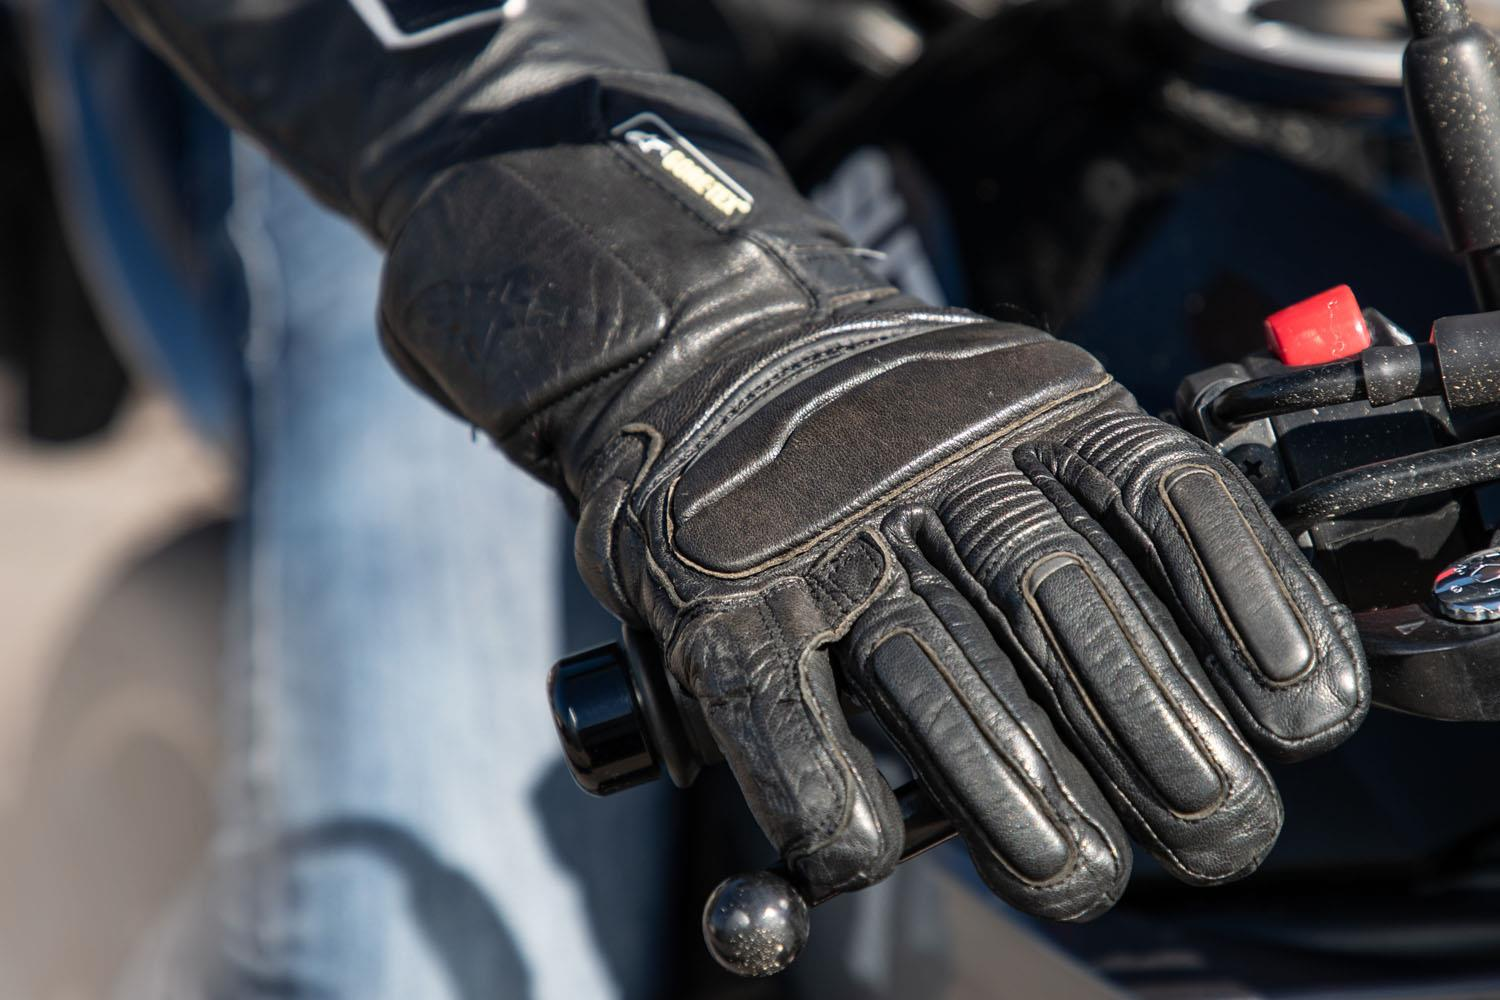 Best motorcycle gloves for all conditions